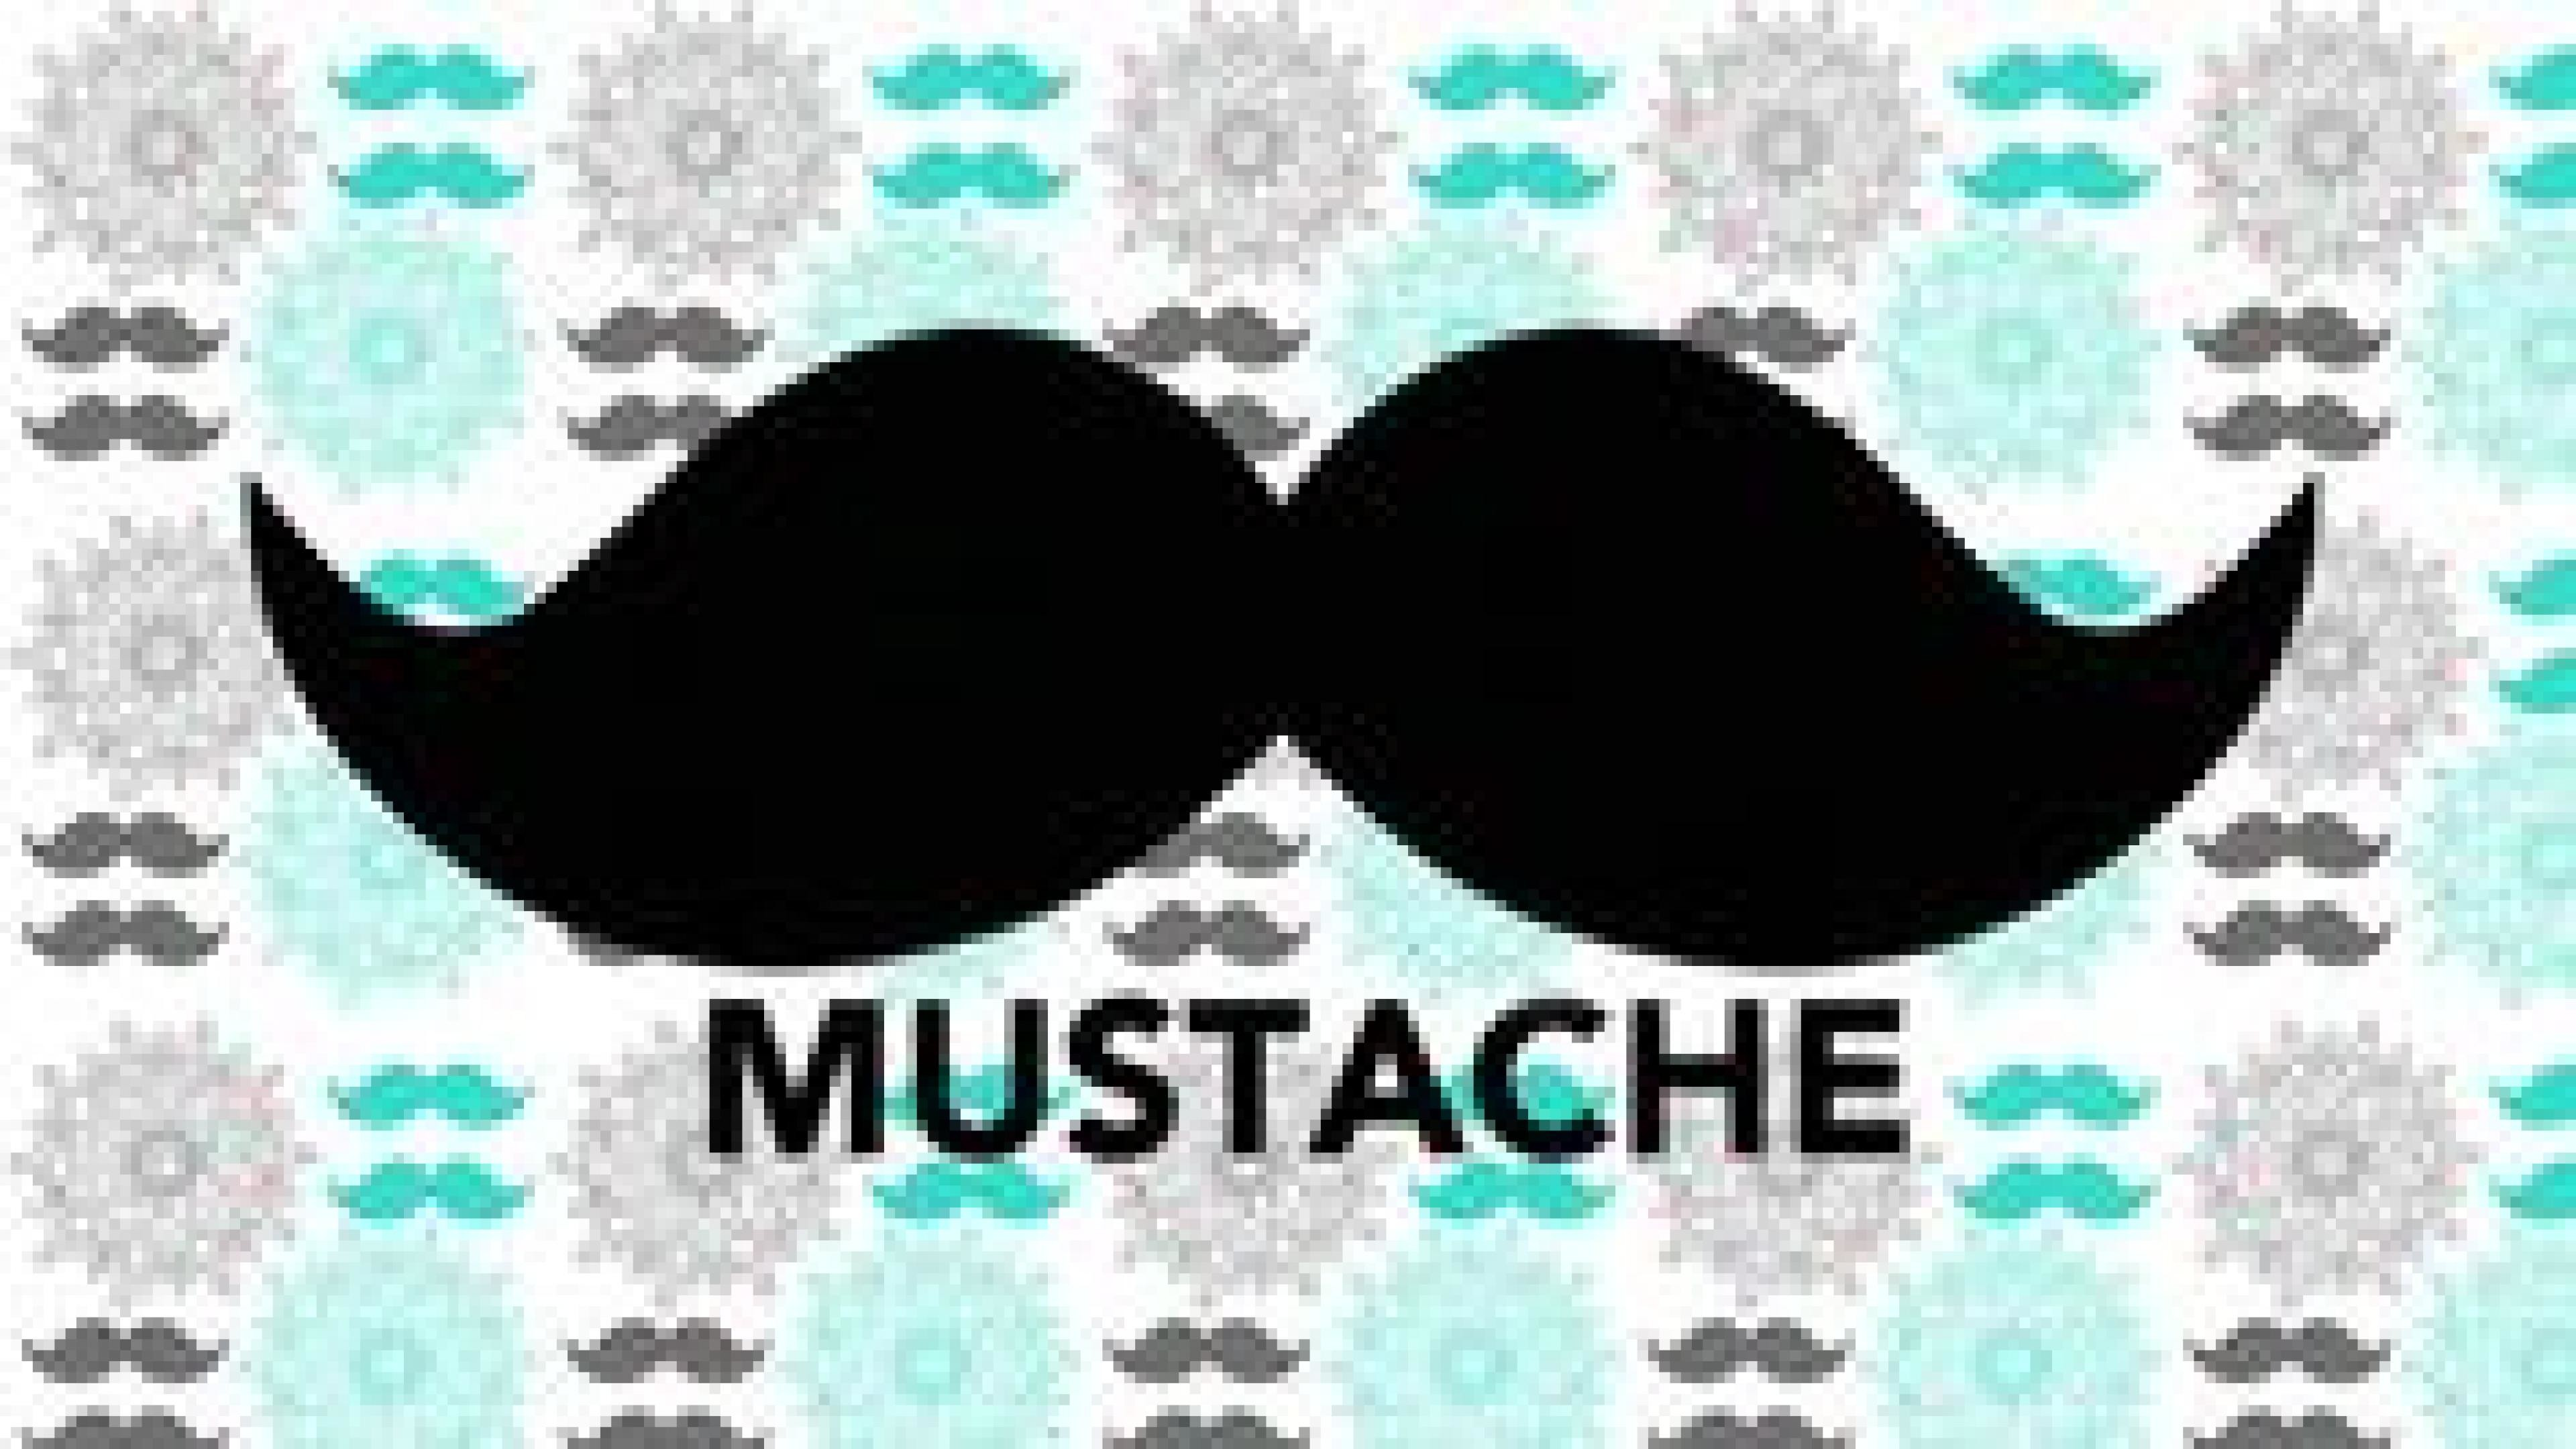 3840x2160 Phone cute mustache teal wallpaper jpg  Phone cute mustache teal  wallpaper